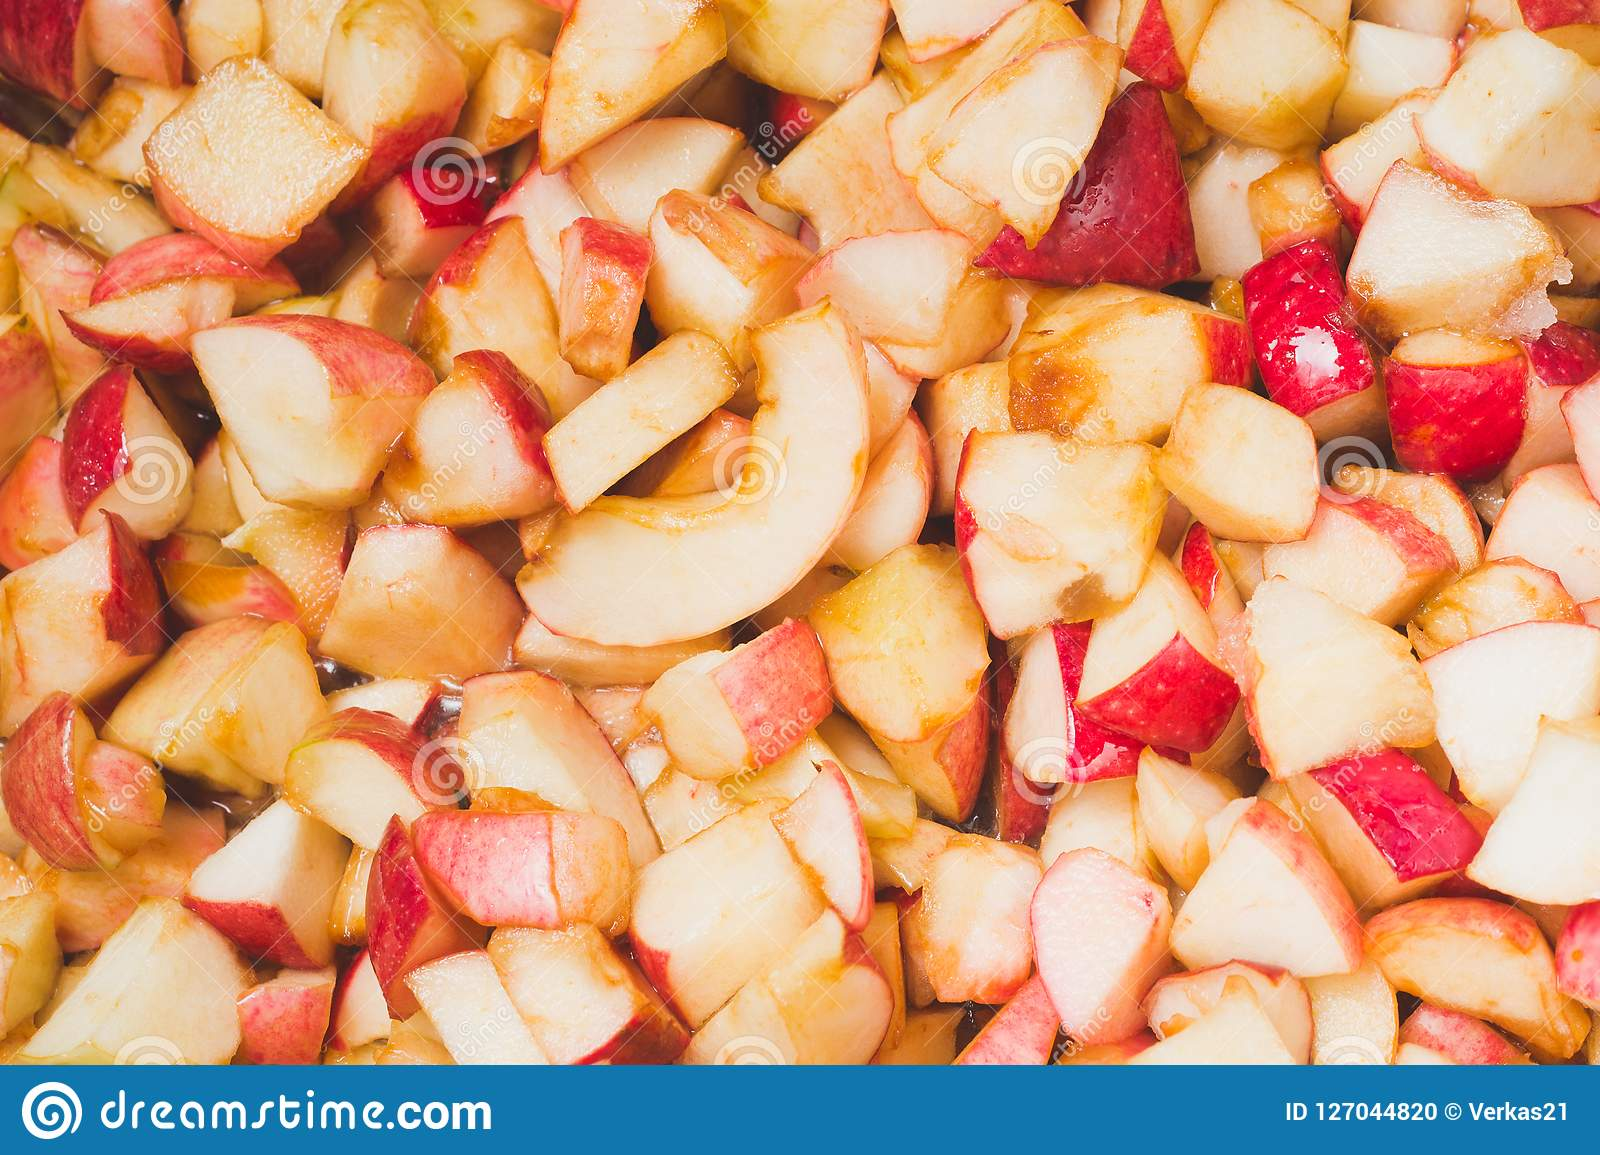 Ripe Apples Are Cooked In Sugar Syrup  The Process Of Making